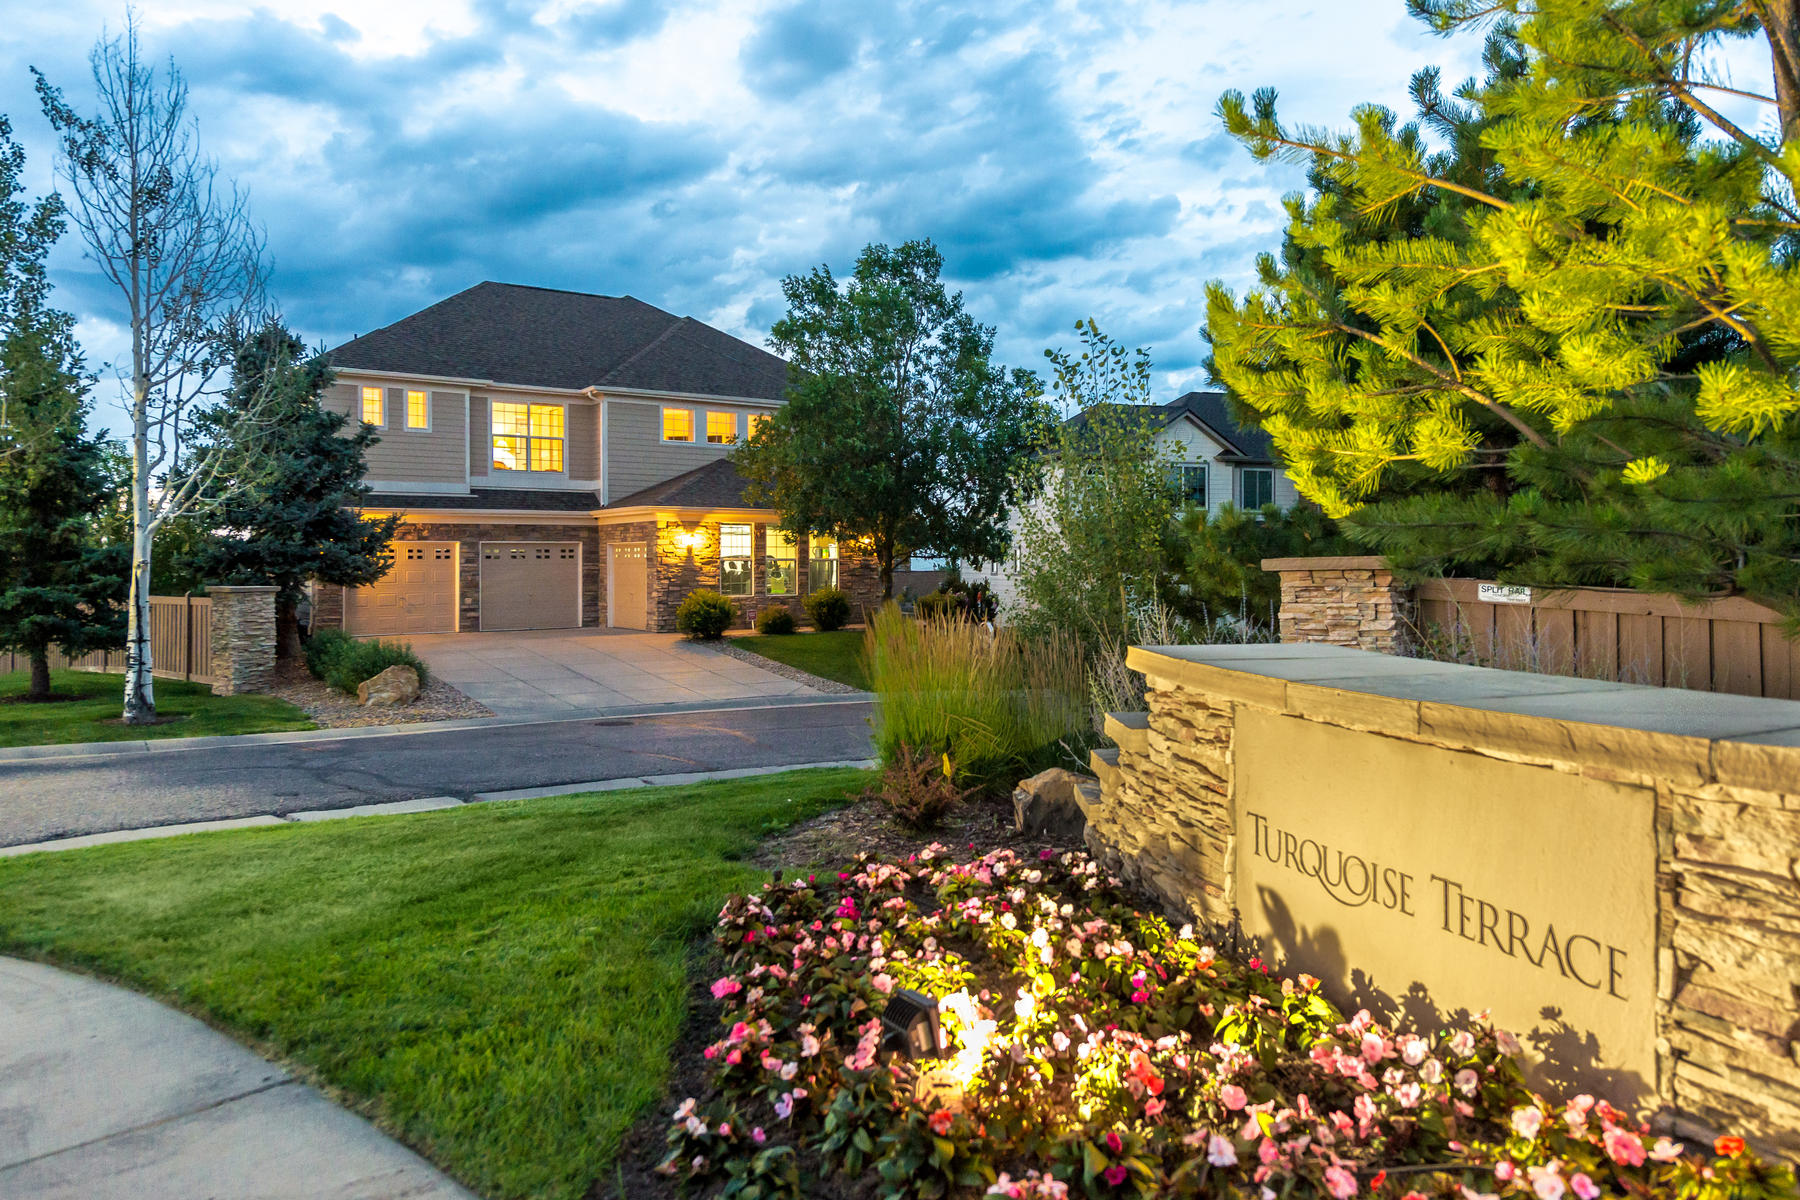 Single Family Home for Active at Beautiful mountain & city sweeping views 12422 Turquoise Terrace Pl Castle Pines, Colorado 80108 United States